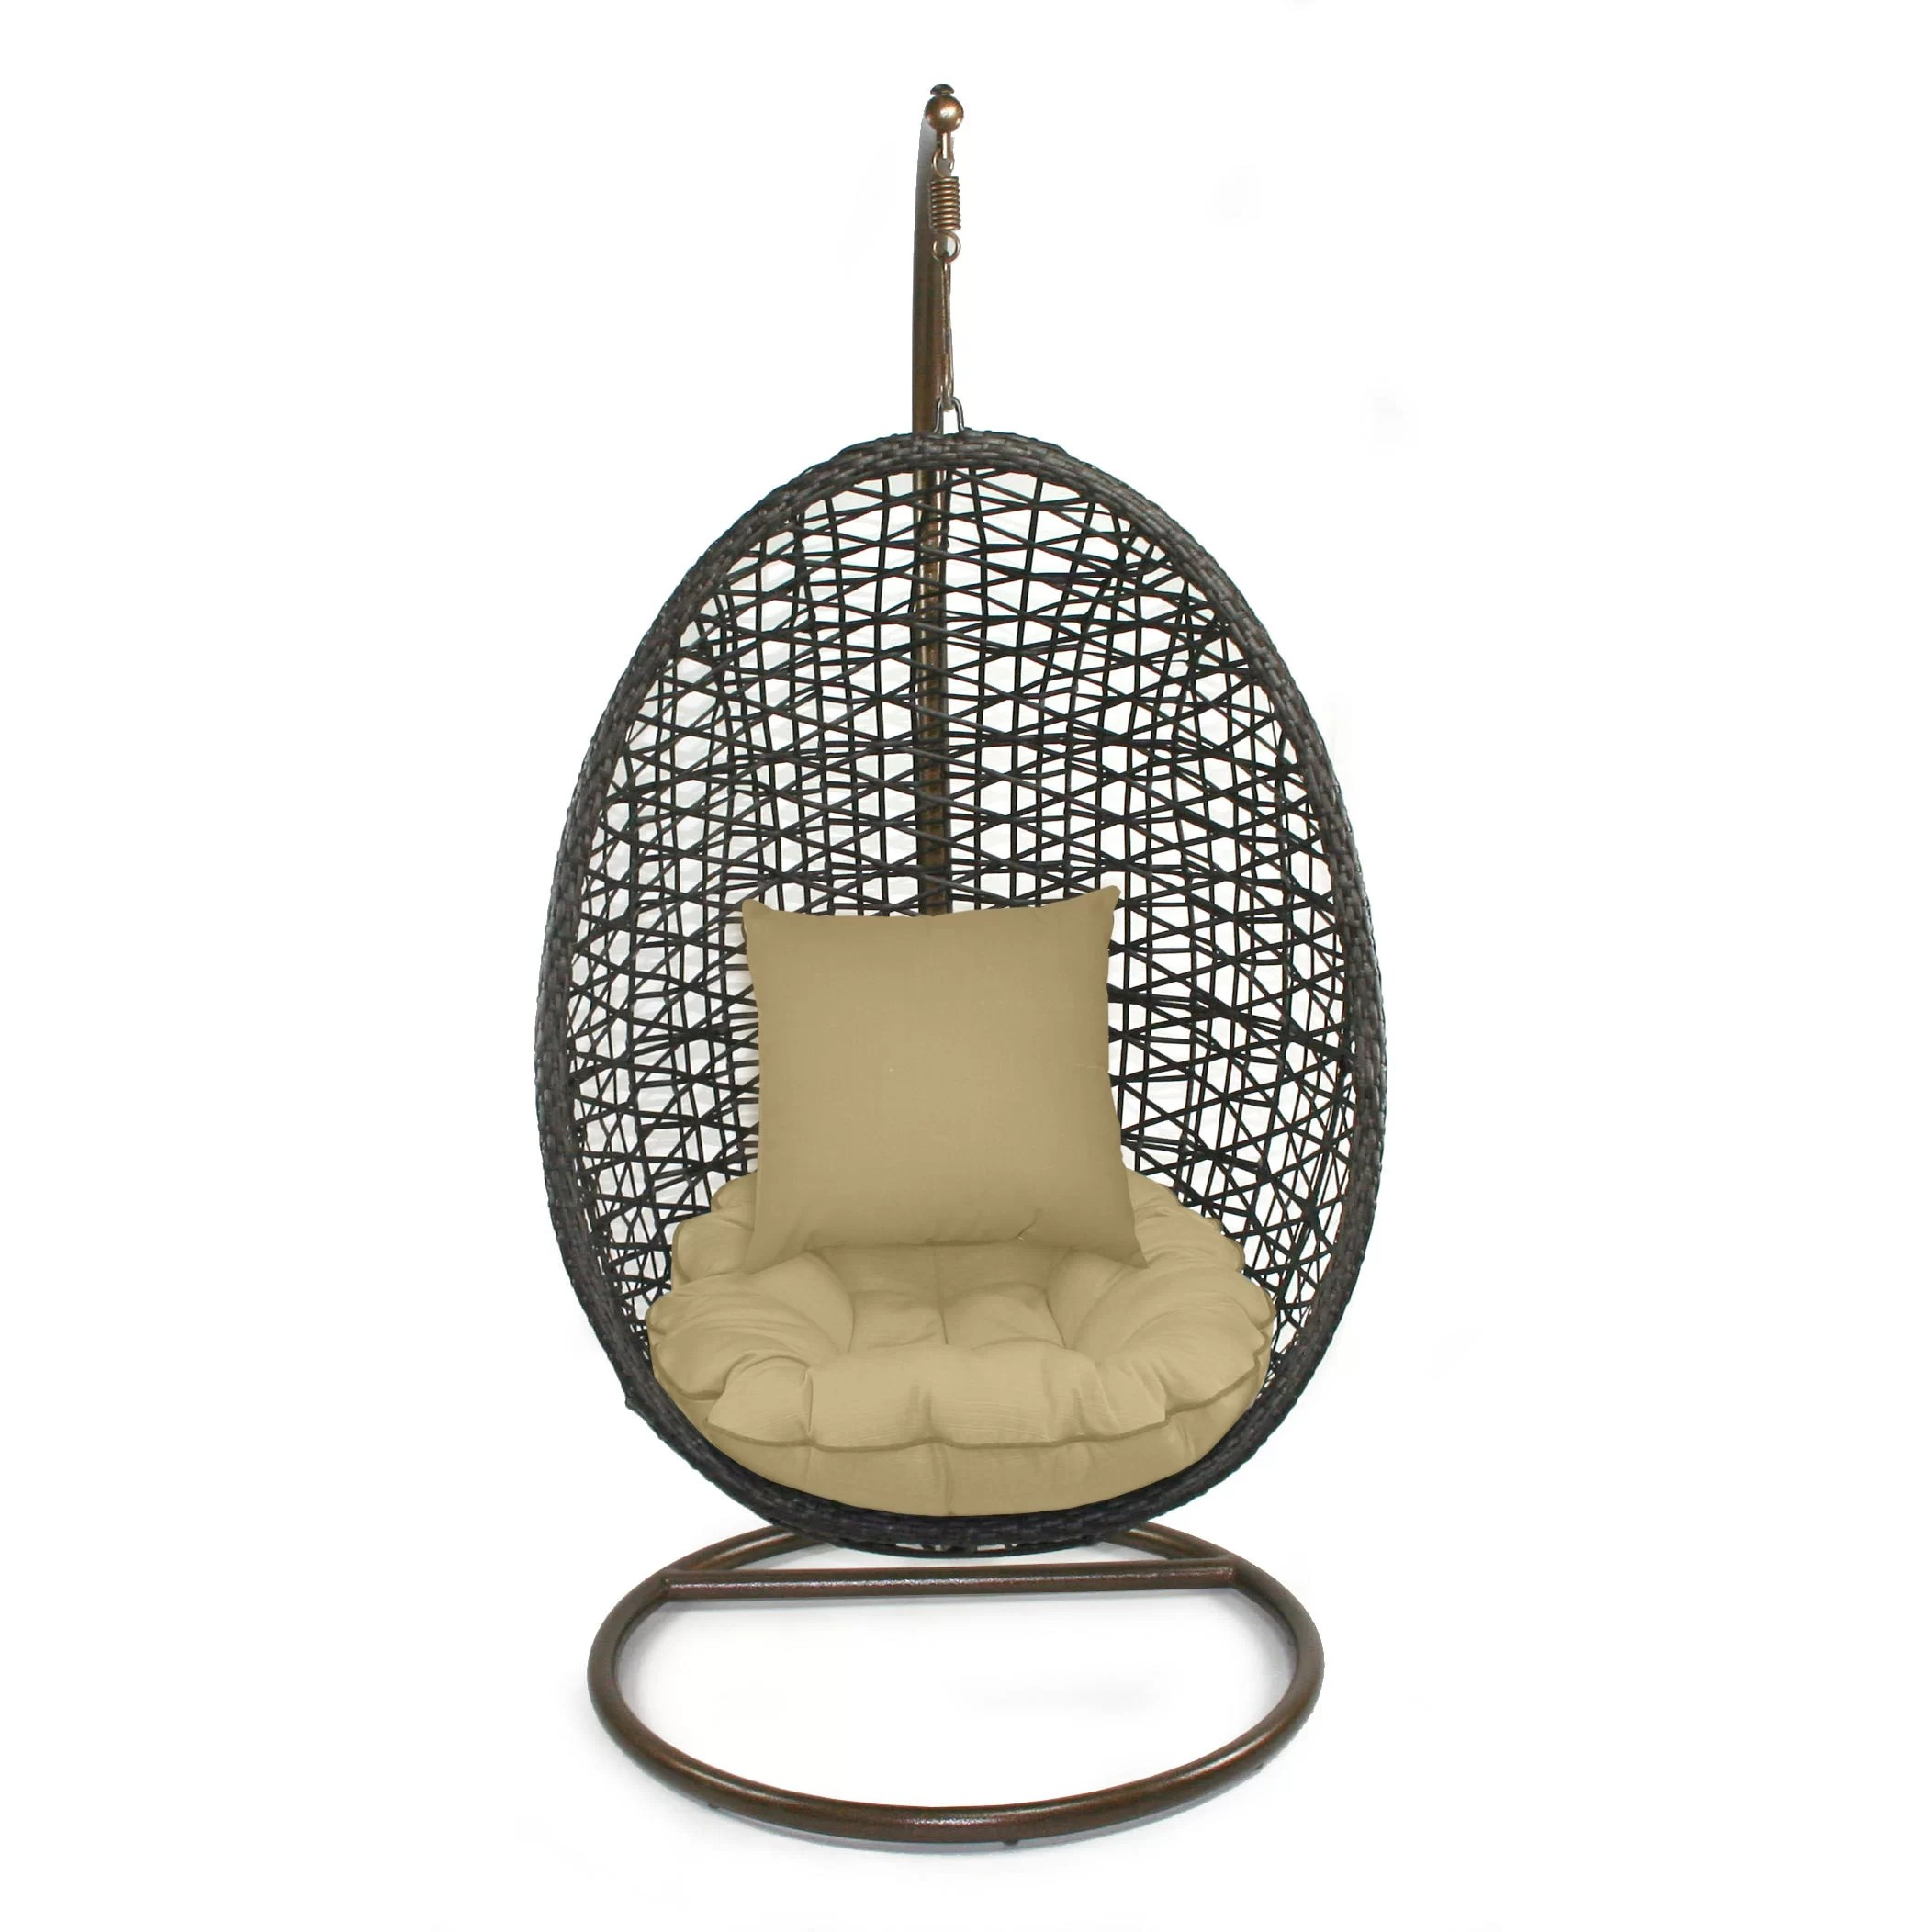 Bird Nest Chair Patio Heaven Skye Bird 39s Nest Swing Chair With Stand